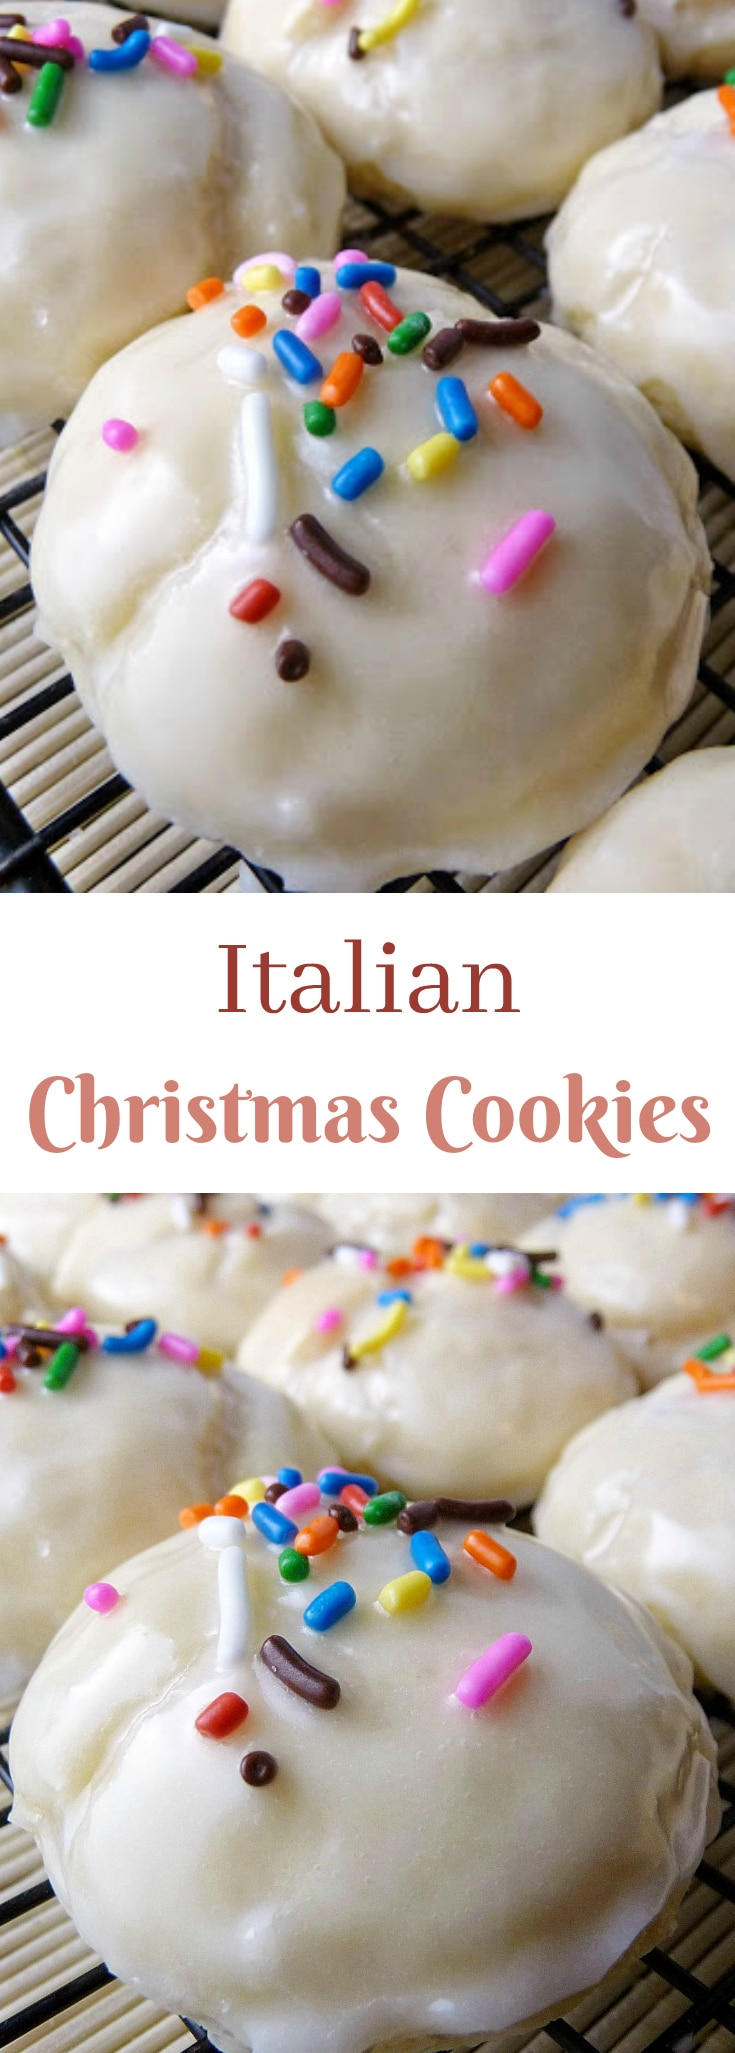 Italian Christmas Cookies - Grumpy's Honey Bunch